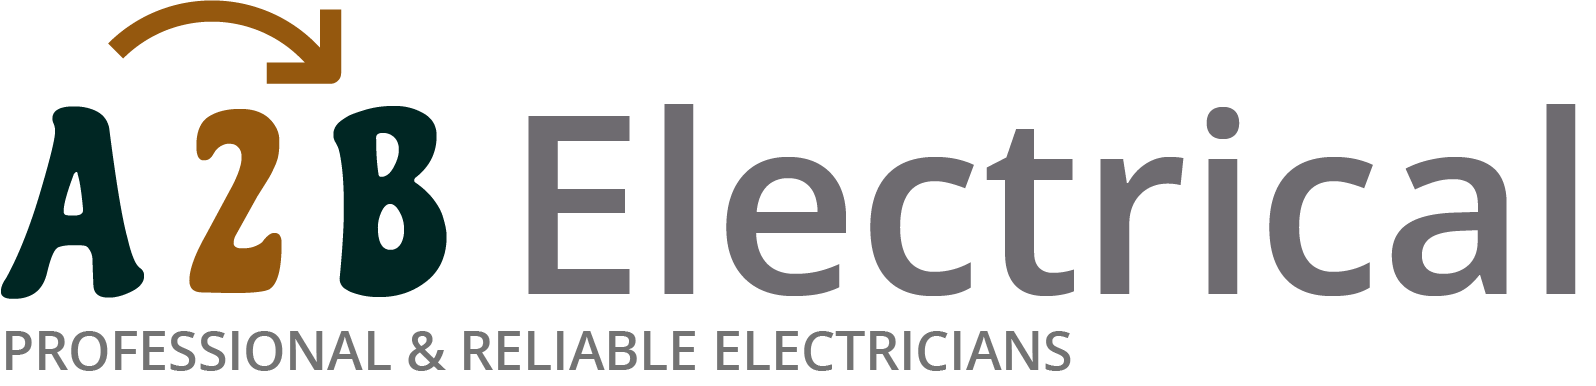 If you have electrical wiring problems in Camden, we can provide an electrician to have a look for you.